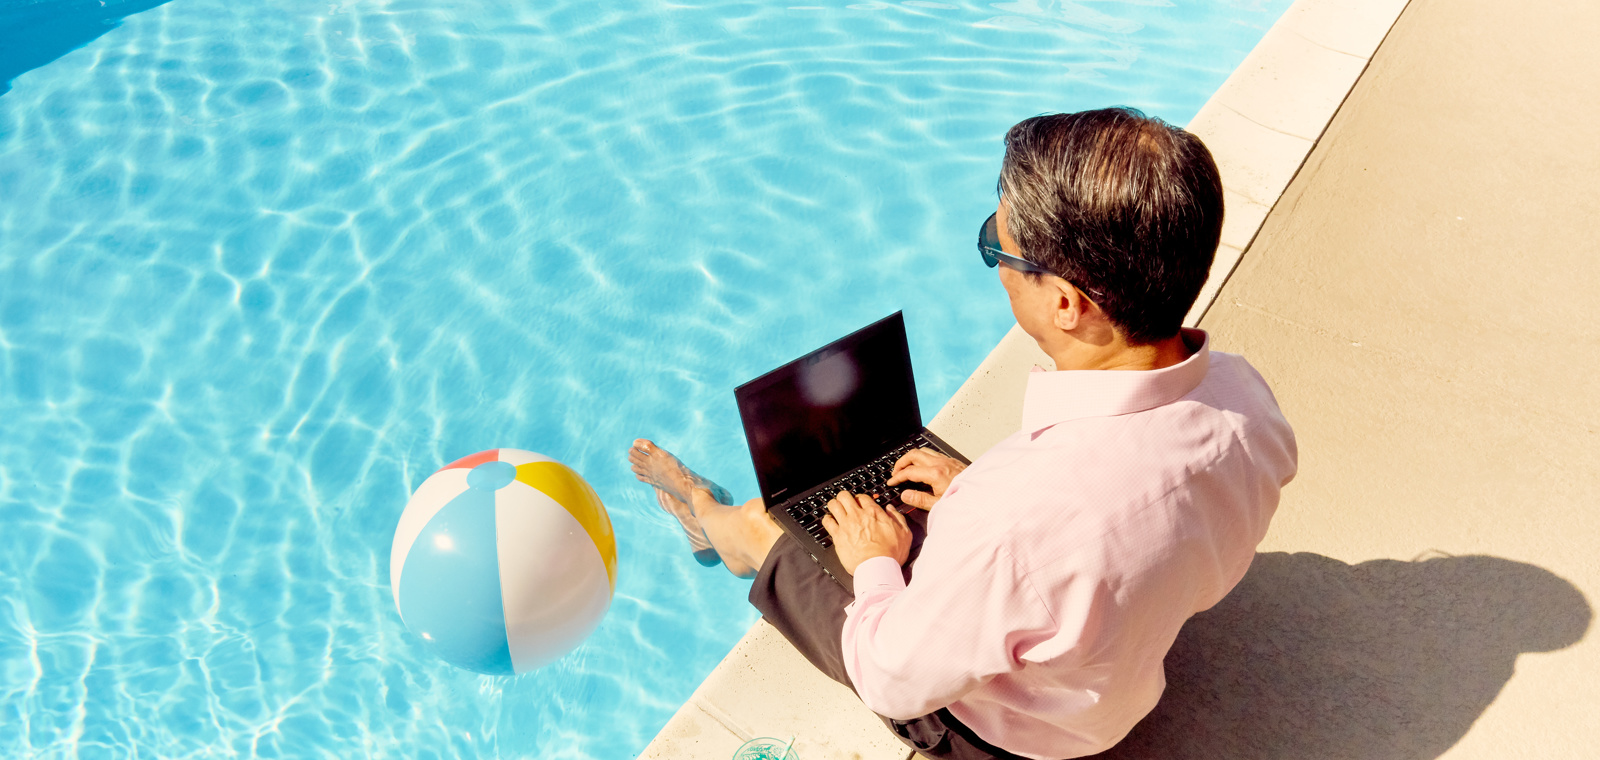 Hotel Avante_Lifestyle_Man Working on Laptop_Pool